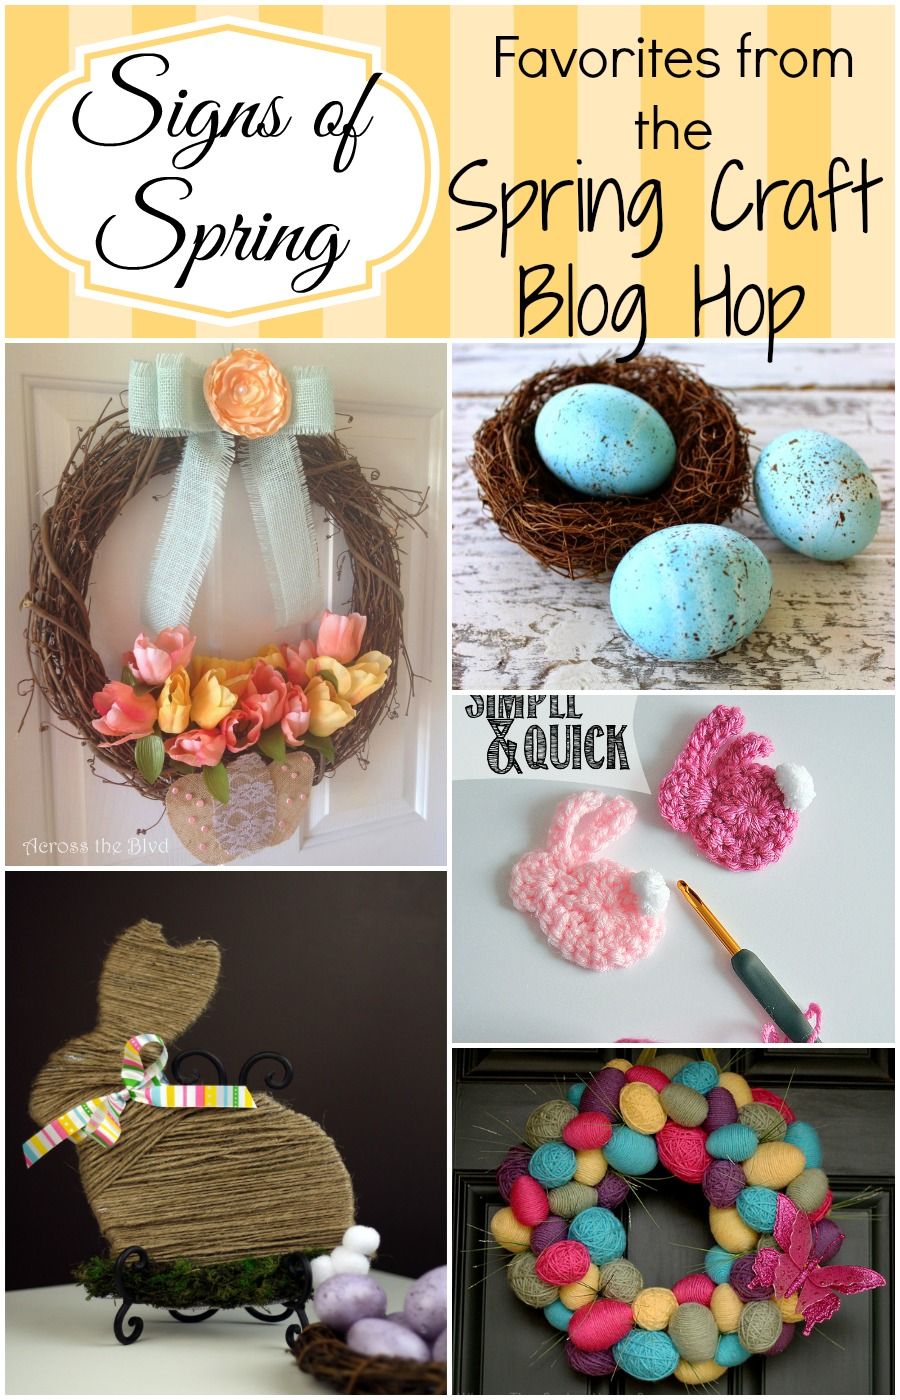 Signs of Spring: Highlights from the Spring Craft Blog Hop - Get ready for Easter with Friday Favorites at Creative Mama Messy House